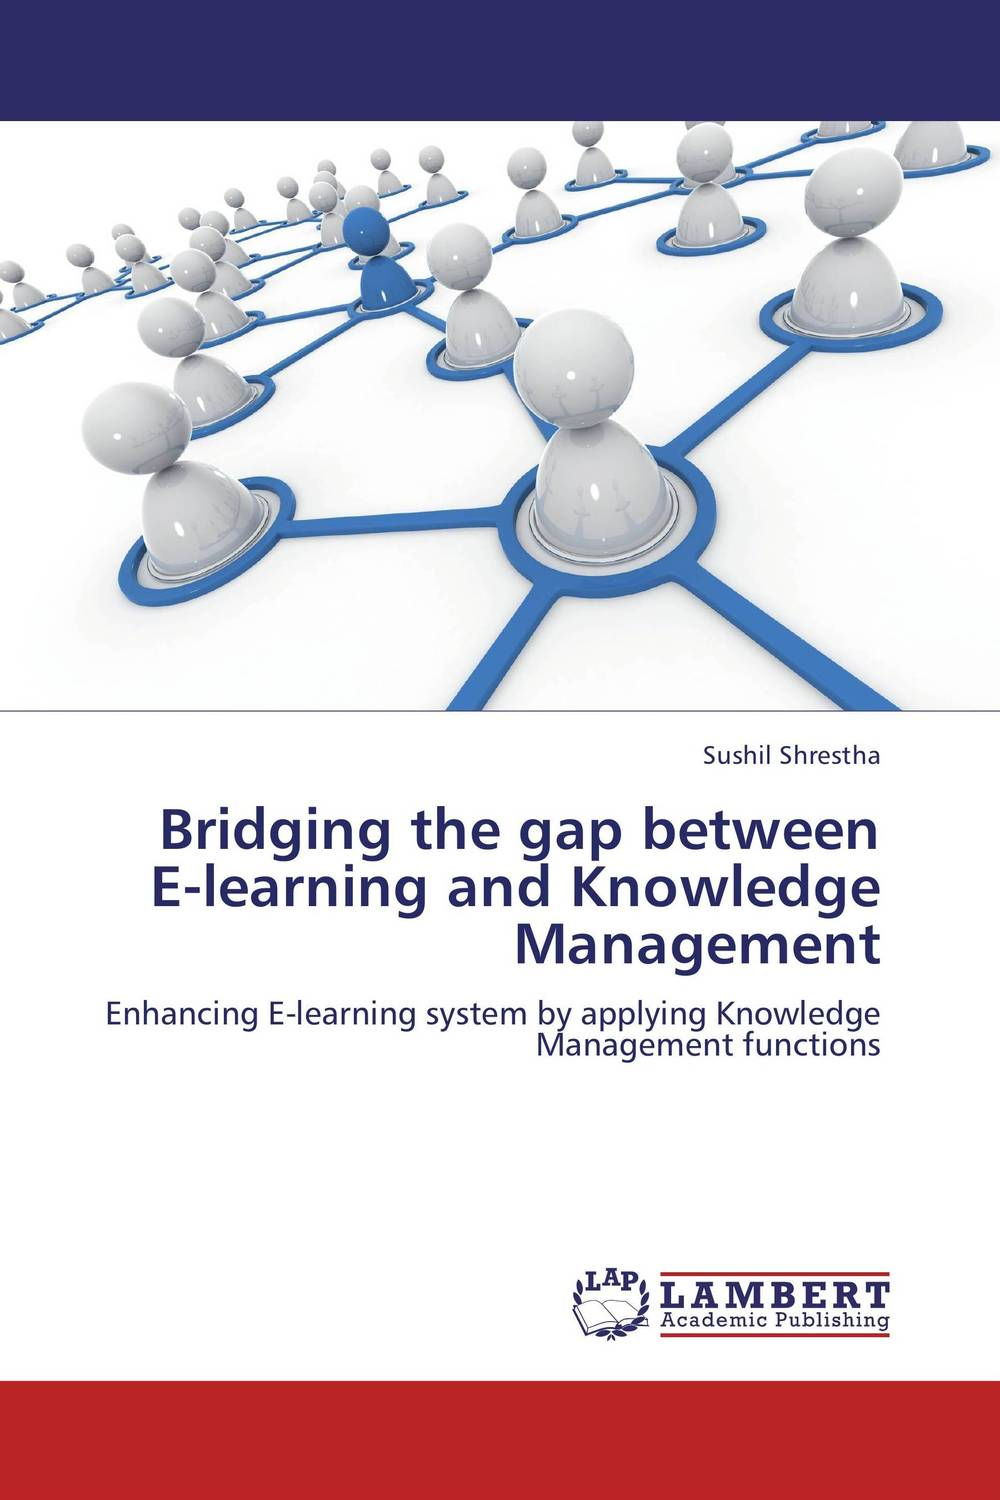 Bridging the gap between E-learning and Knowledge Management hospitality knowledge management